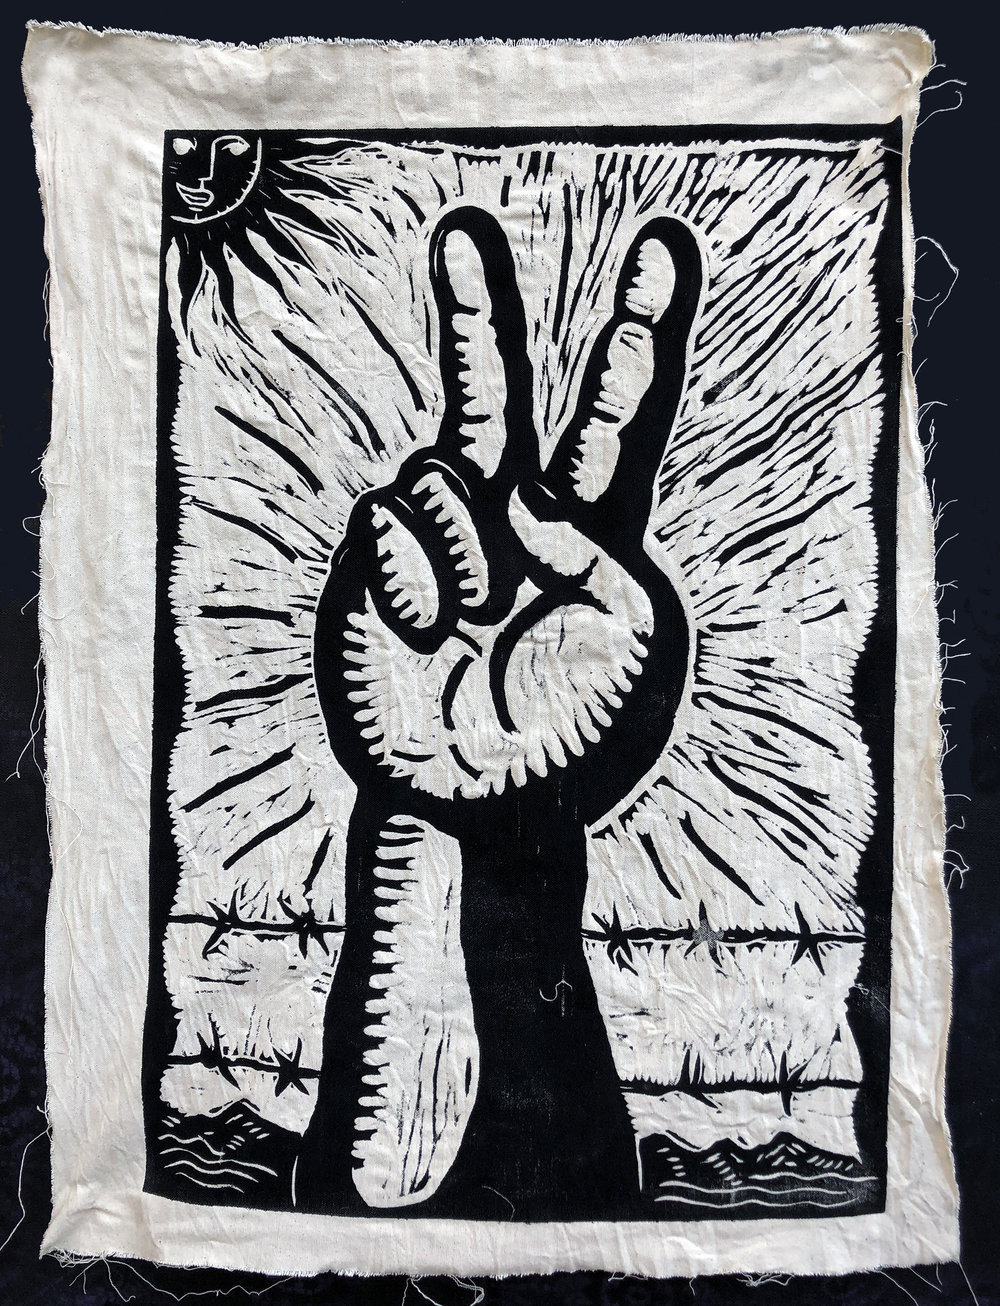 "Sending good vibes is a simple, yet powerful gesture. It's a start. The peace sign sends a message of peace. The hand gesture also indicates two. Two what? There are two of us. We are stronger together.  Title: Vibra Buena  Medium: Oil Monoprint on canvas  Size: 20"" x 28""  Year of Creation: 2018  For sales inquiries, please contact the artist directly at  www.joeray.com"